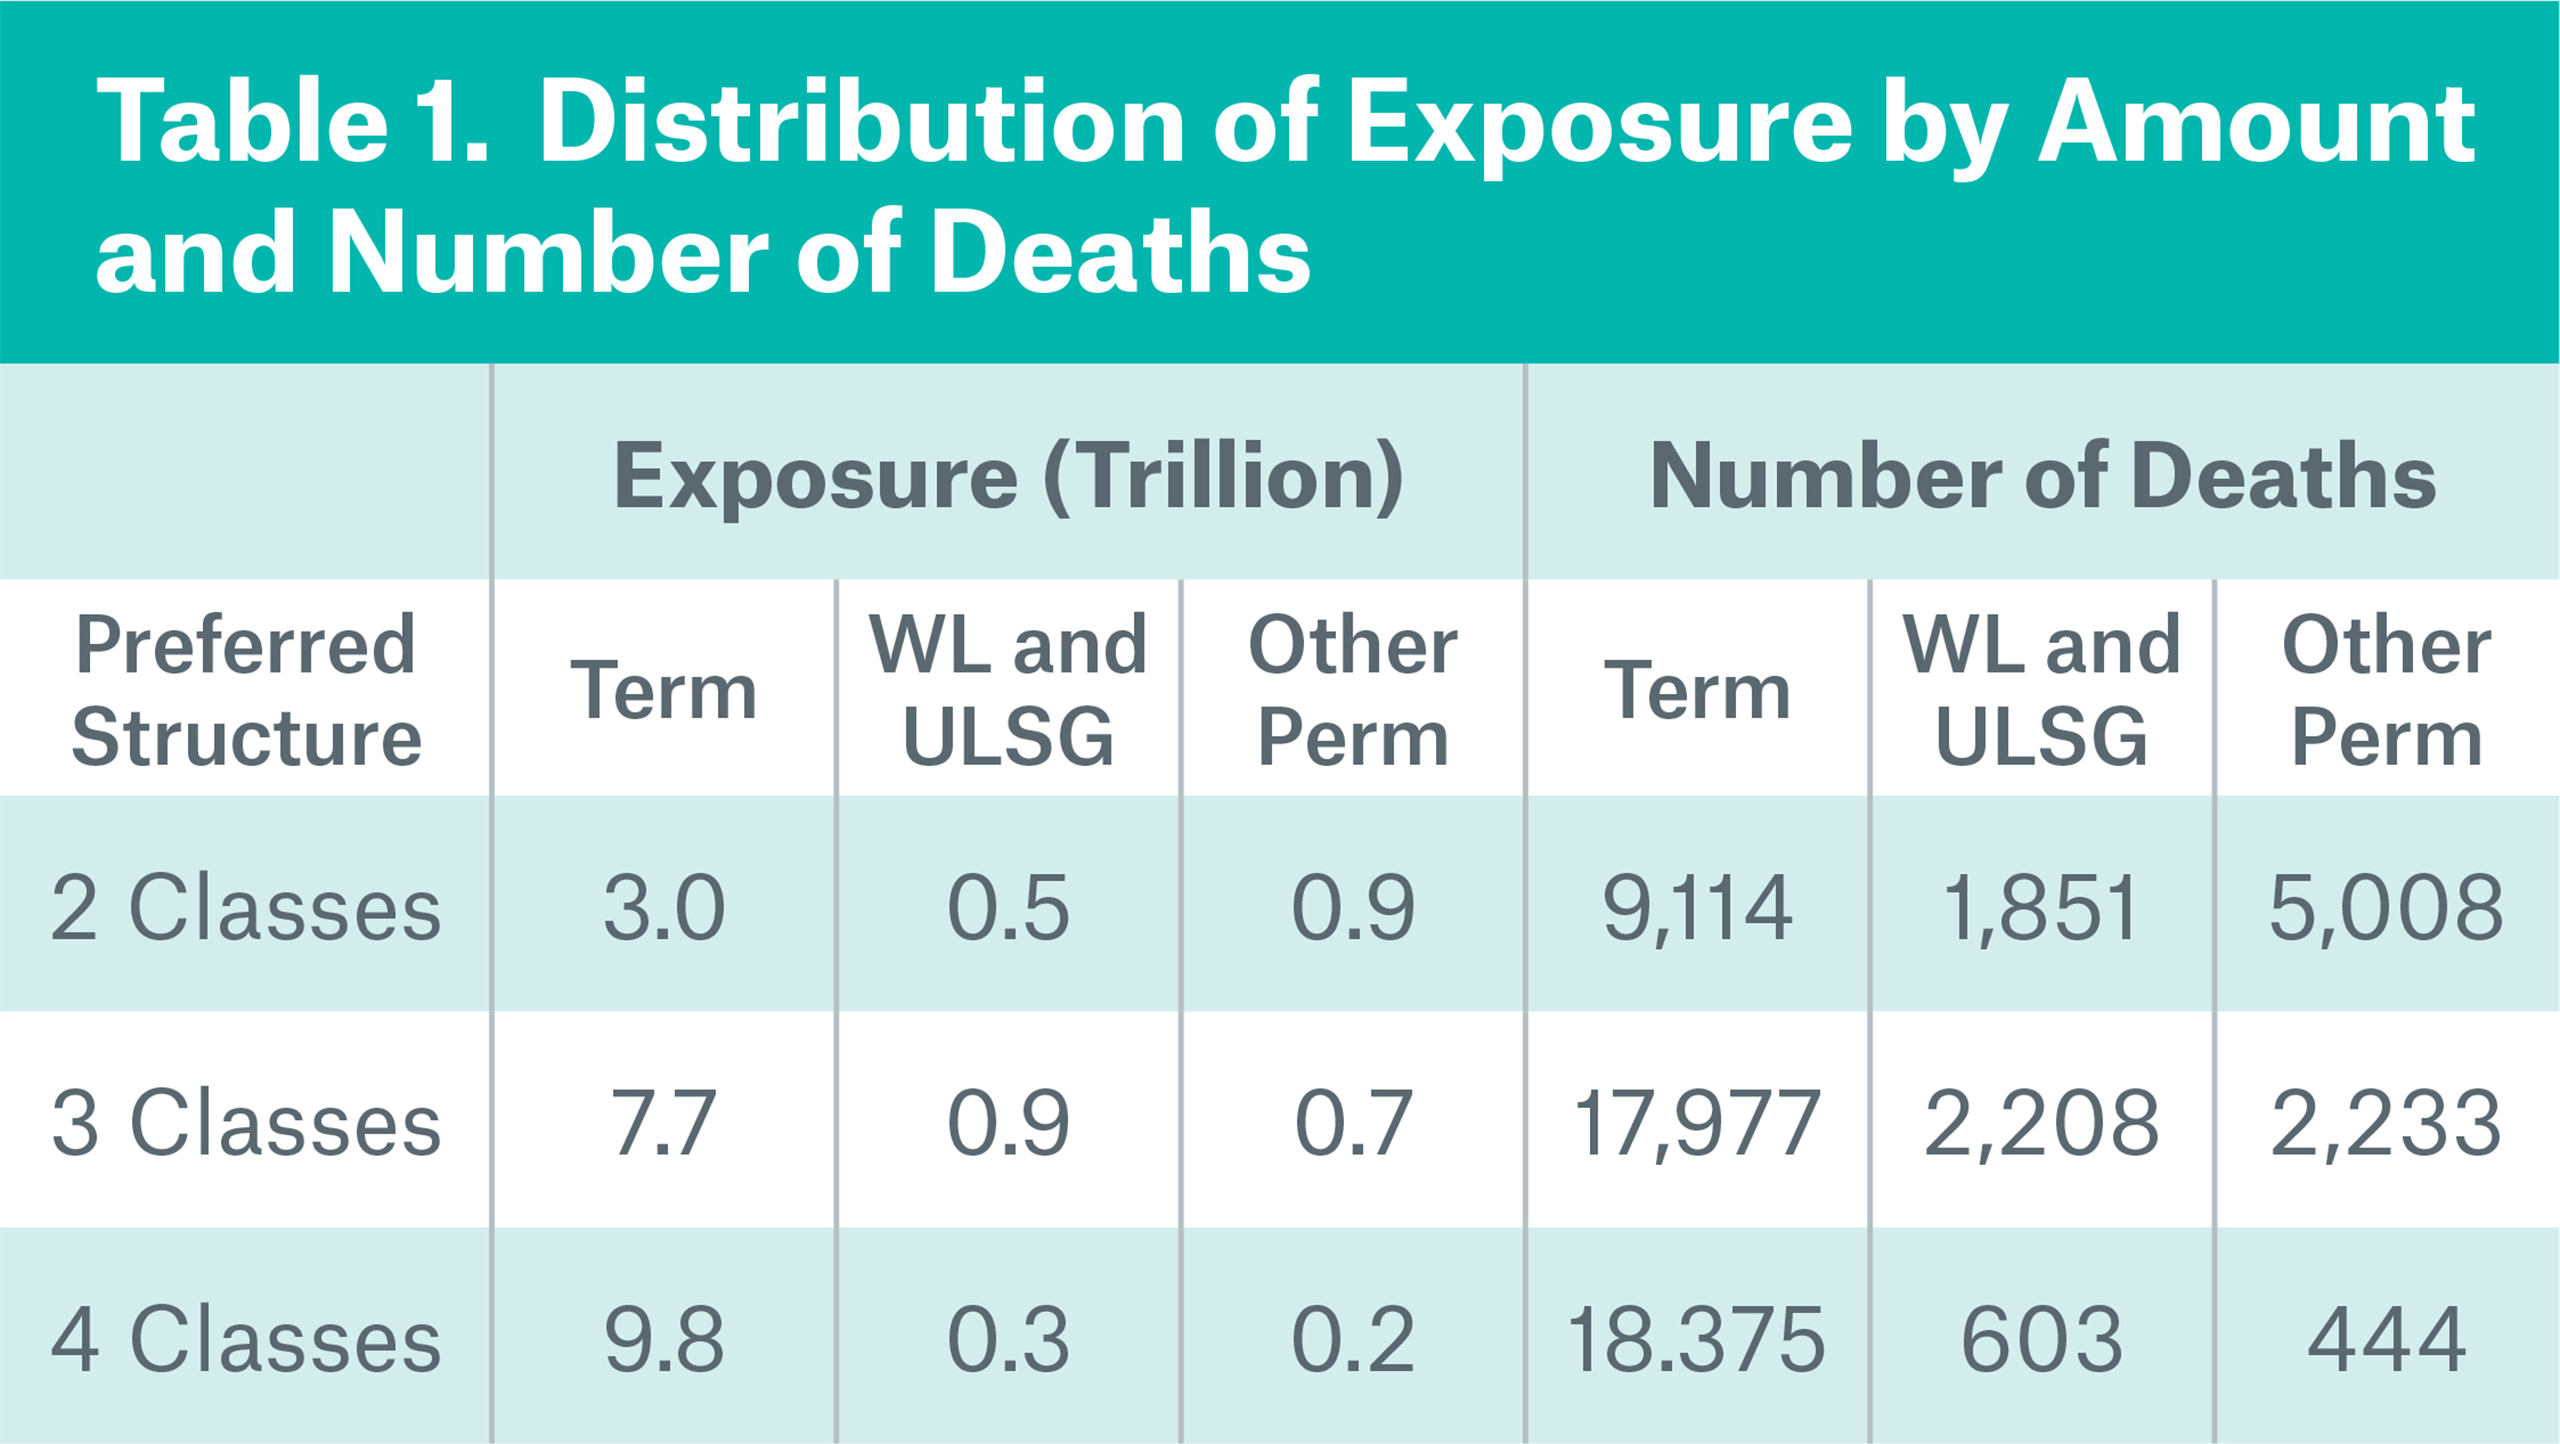 Table 1 Distribution of exposure by amount and number of deaths